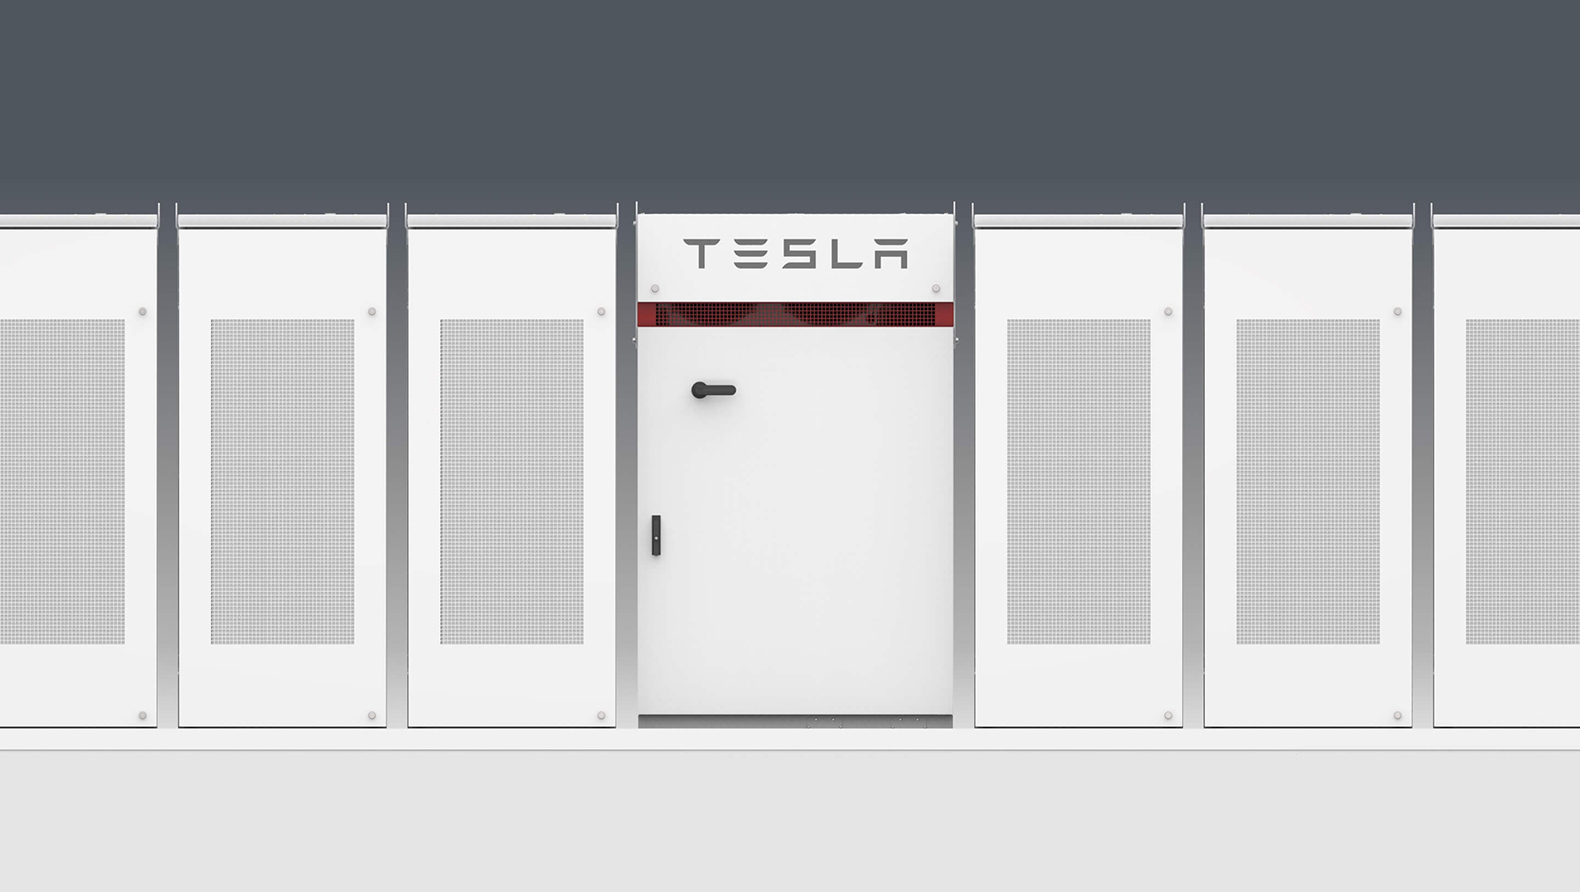 Tesla has finished building the world's biggest lithium ion battery